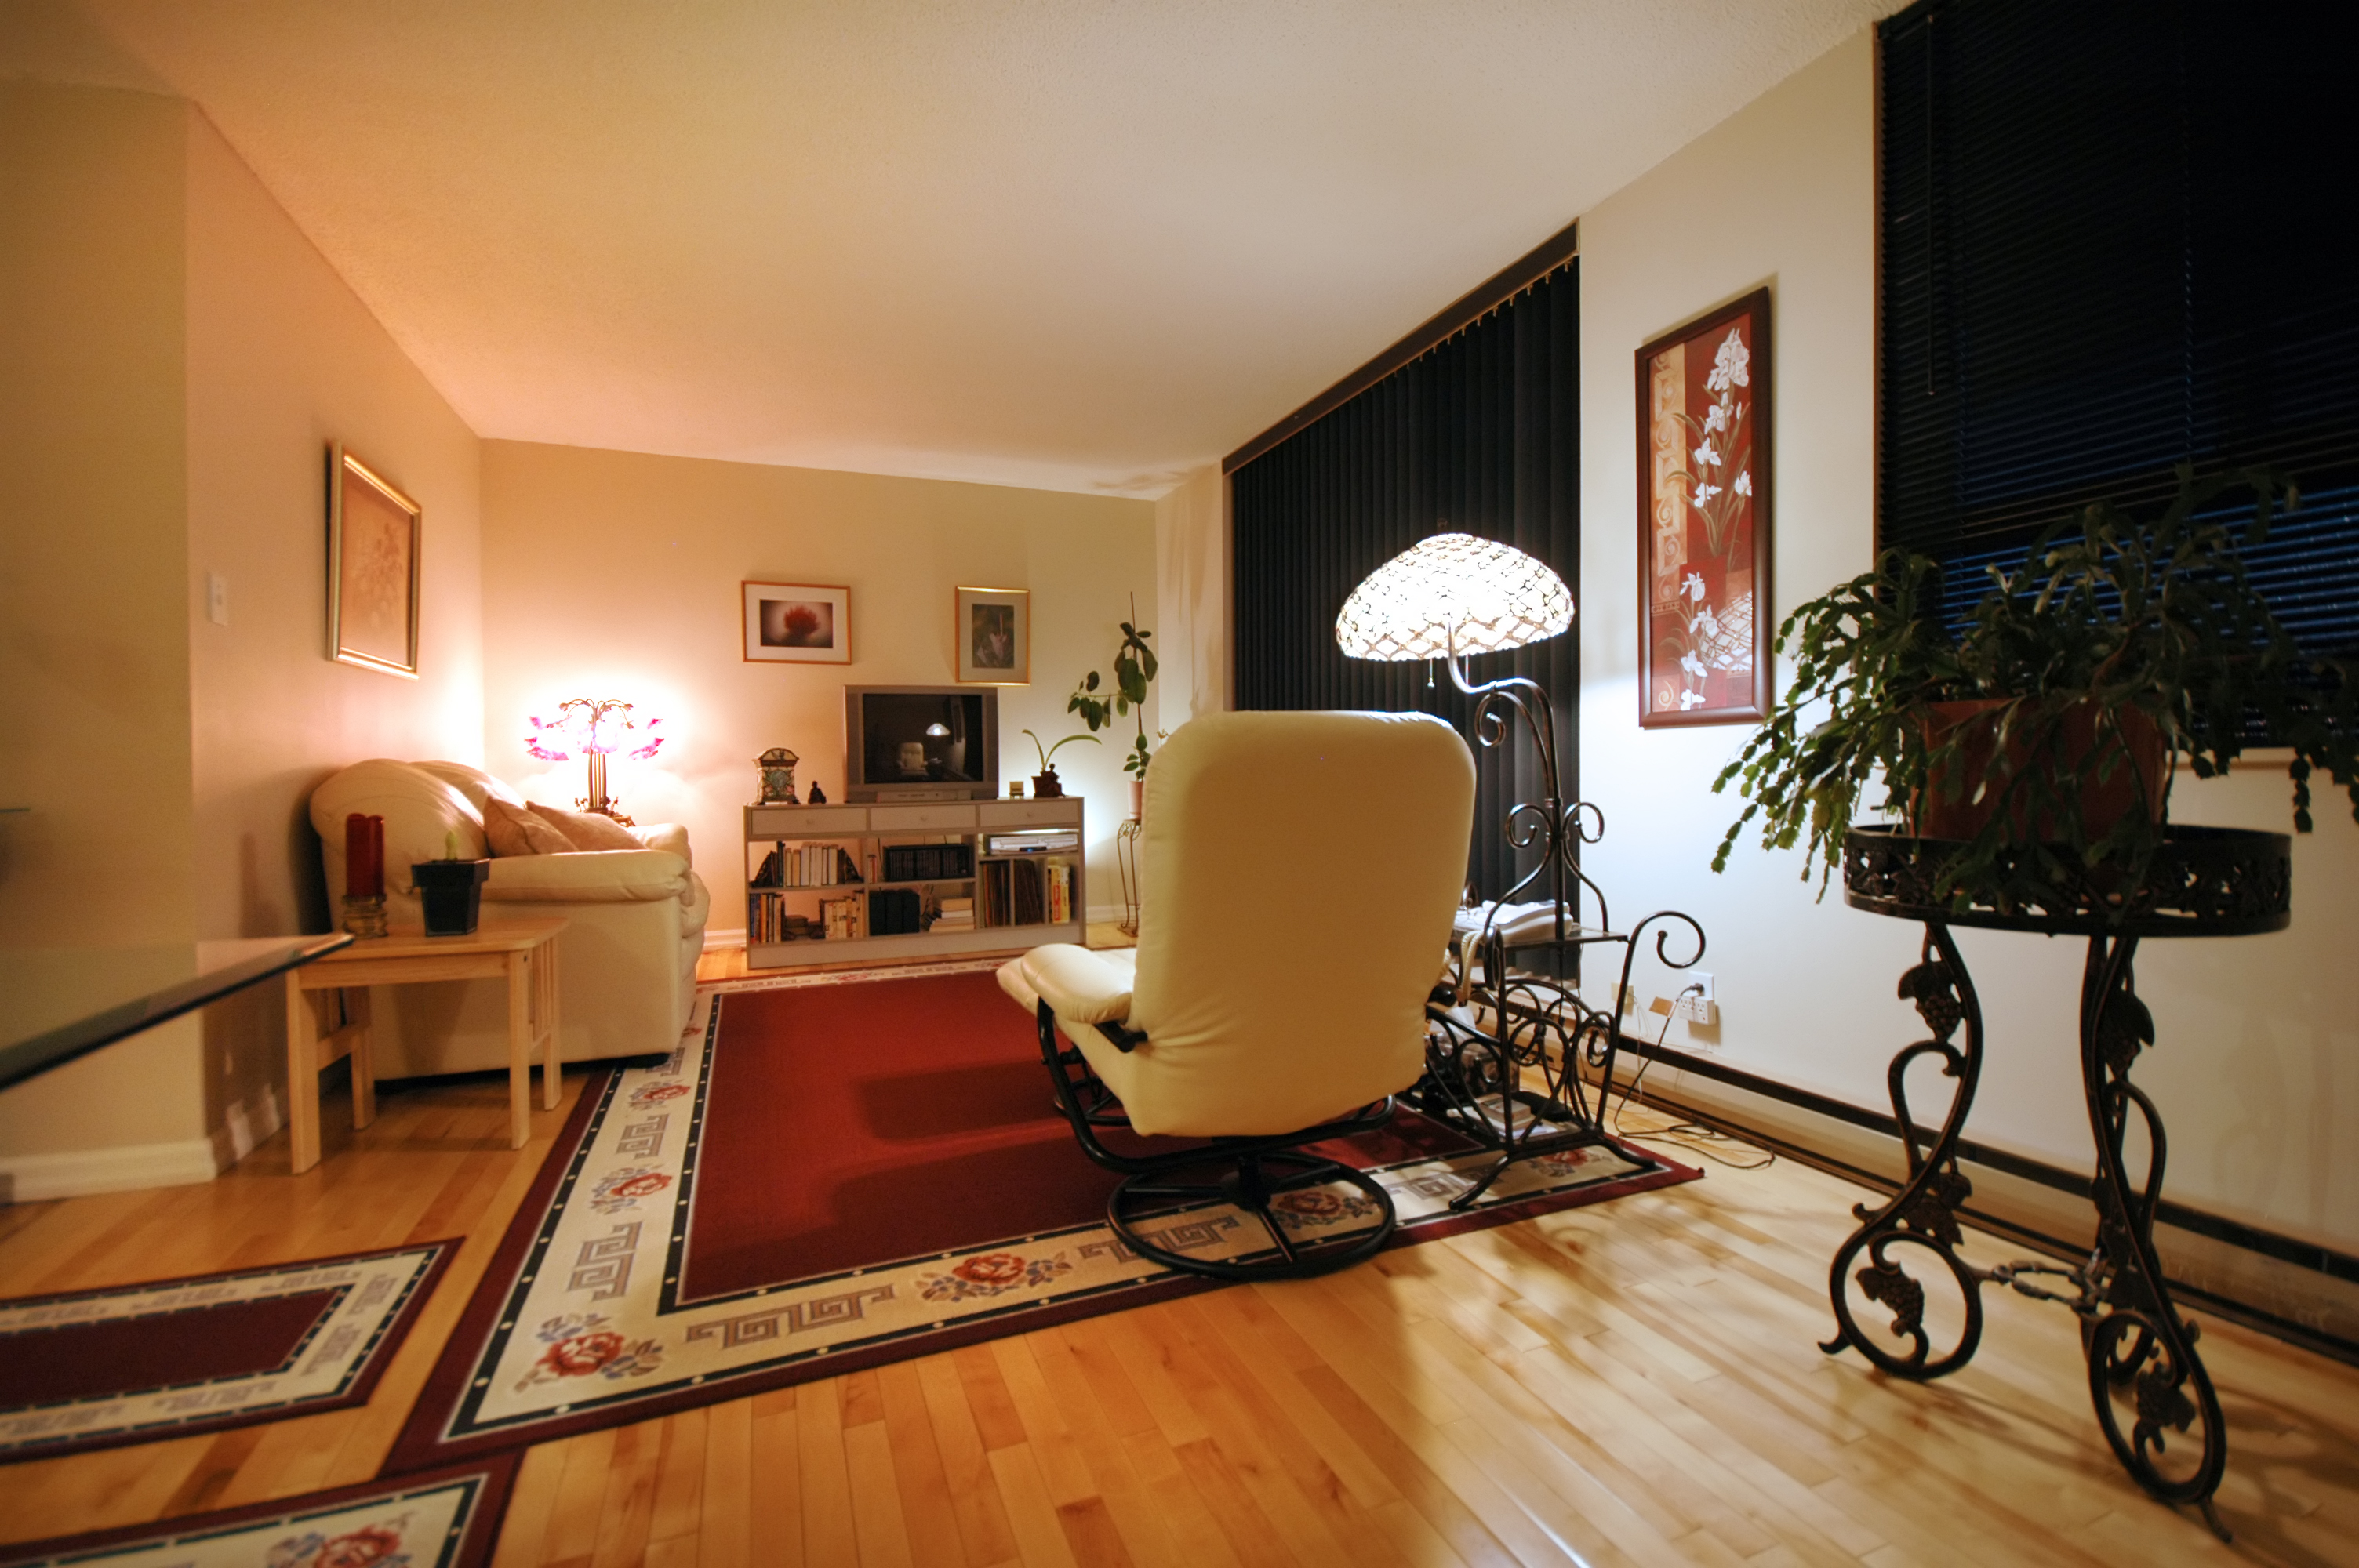 Hardwood Floors Living Room Model Adorable Www.ventnortourismi201508Awesomelivingro. Inspiration Design